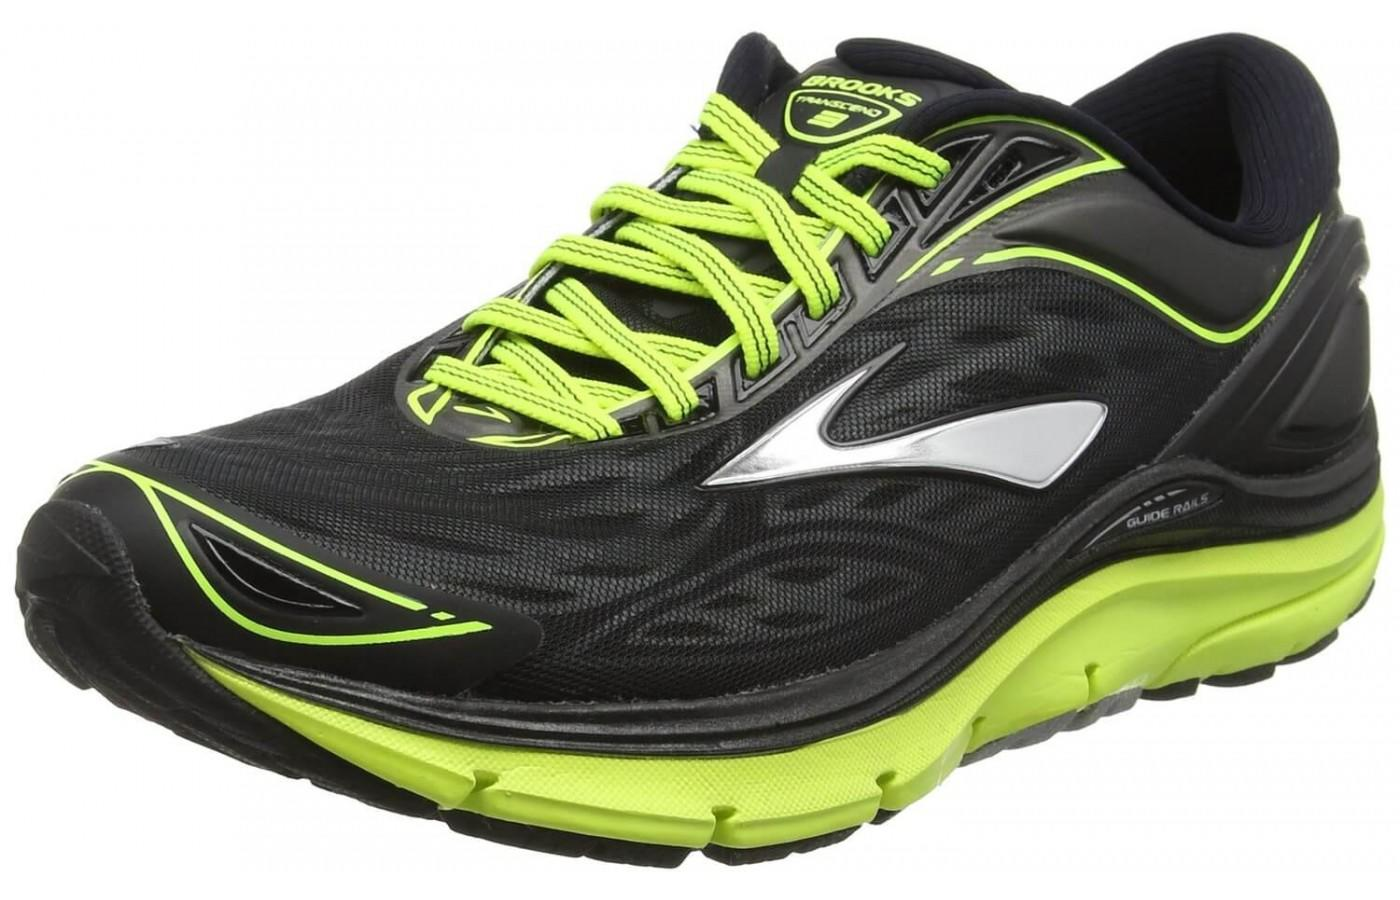 the Brooks Transcend 3 is a great running shoe for those that need customized cushioning in their trainer